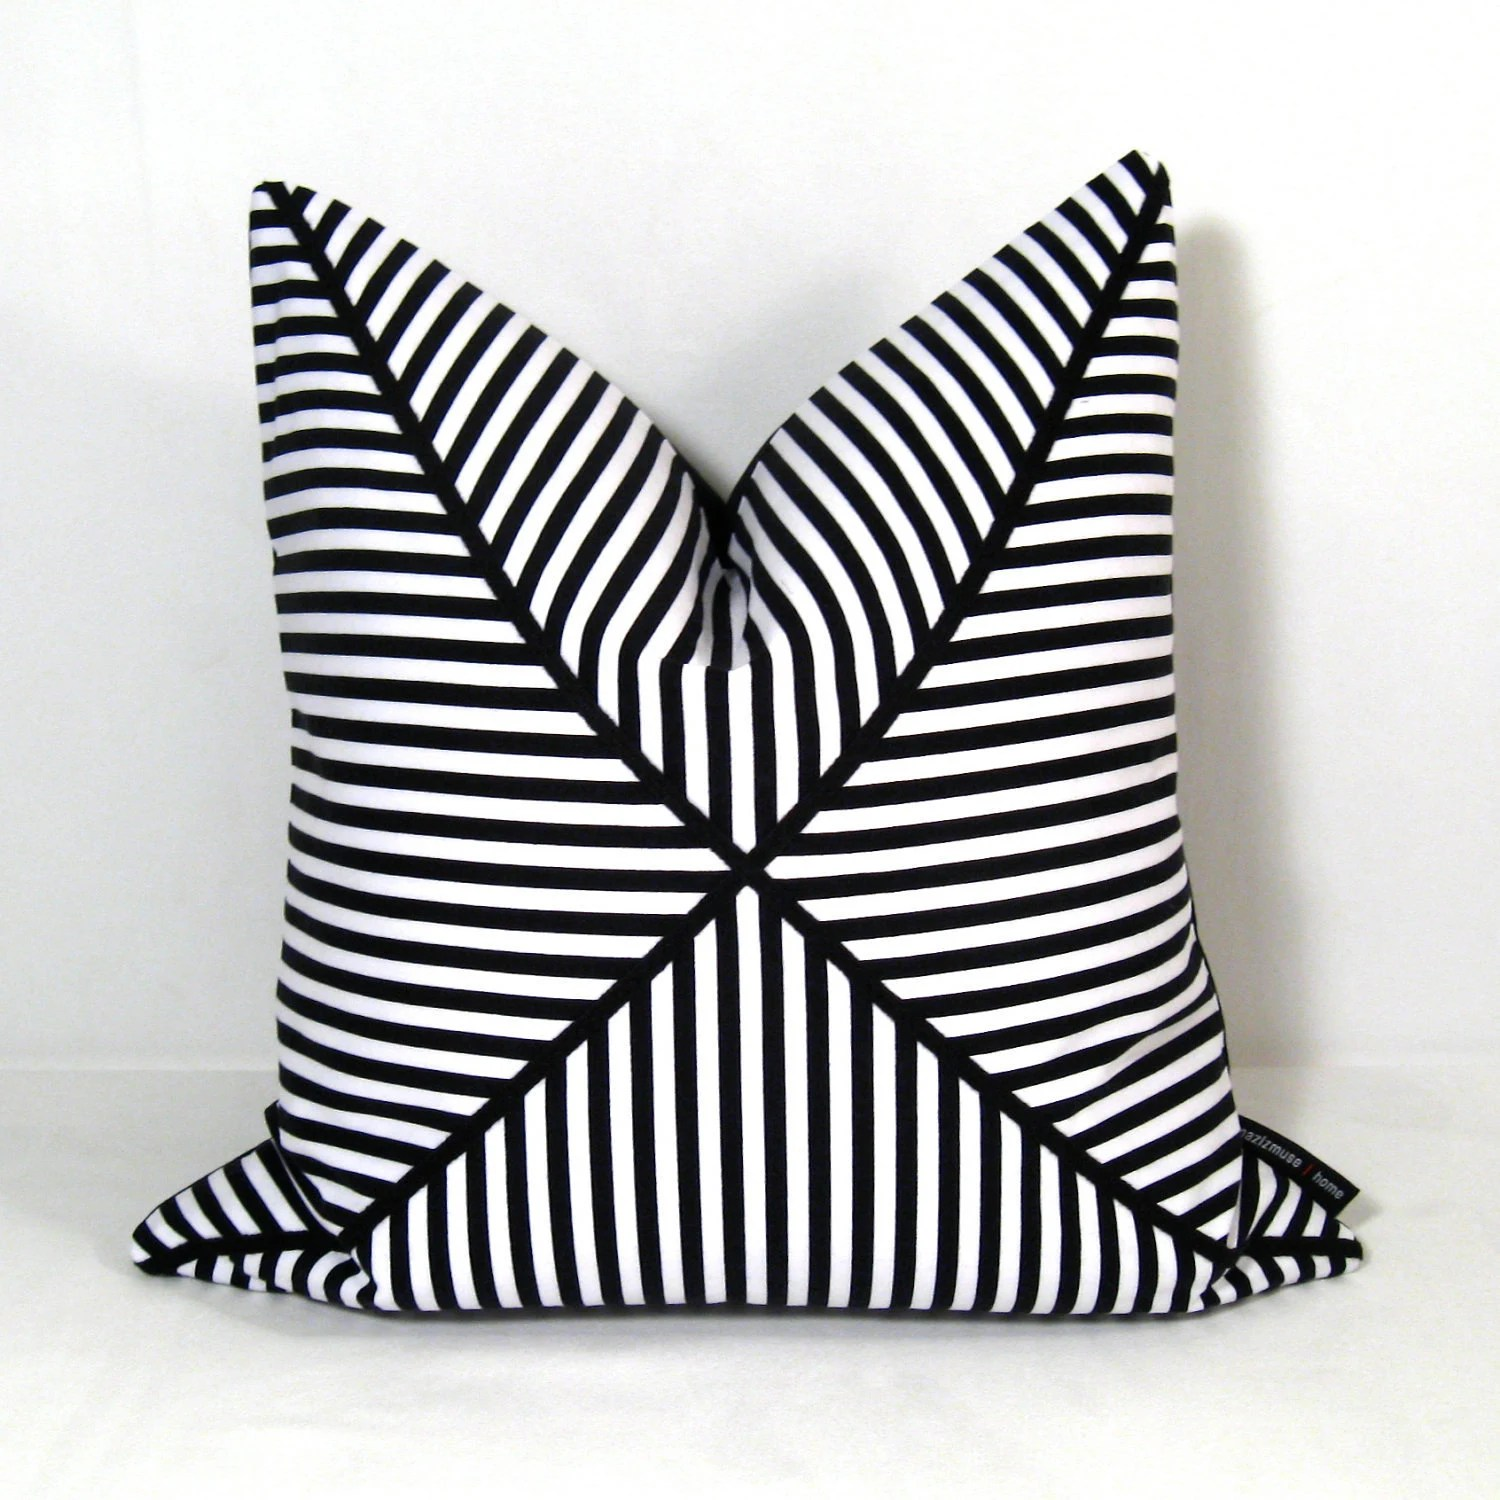 Best Hold For Kelly Until February 22 Black White Pillow By This Month